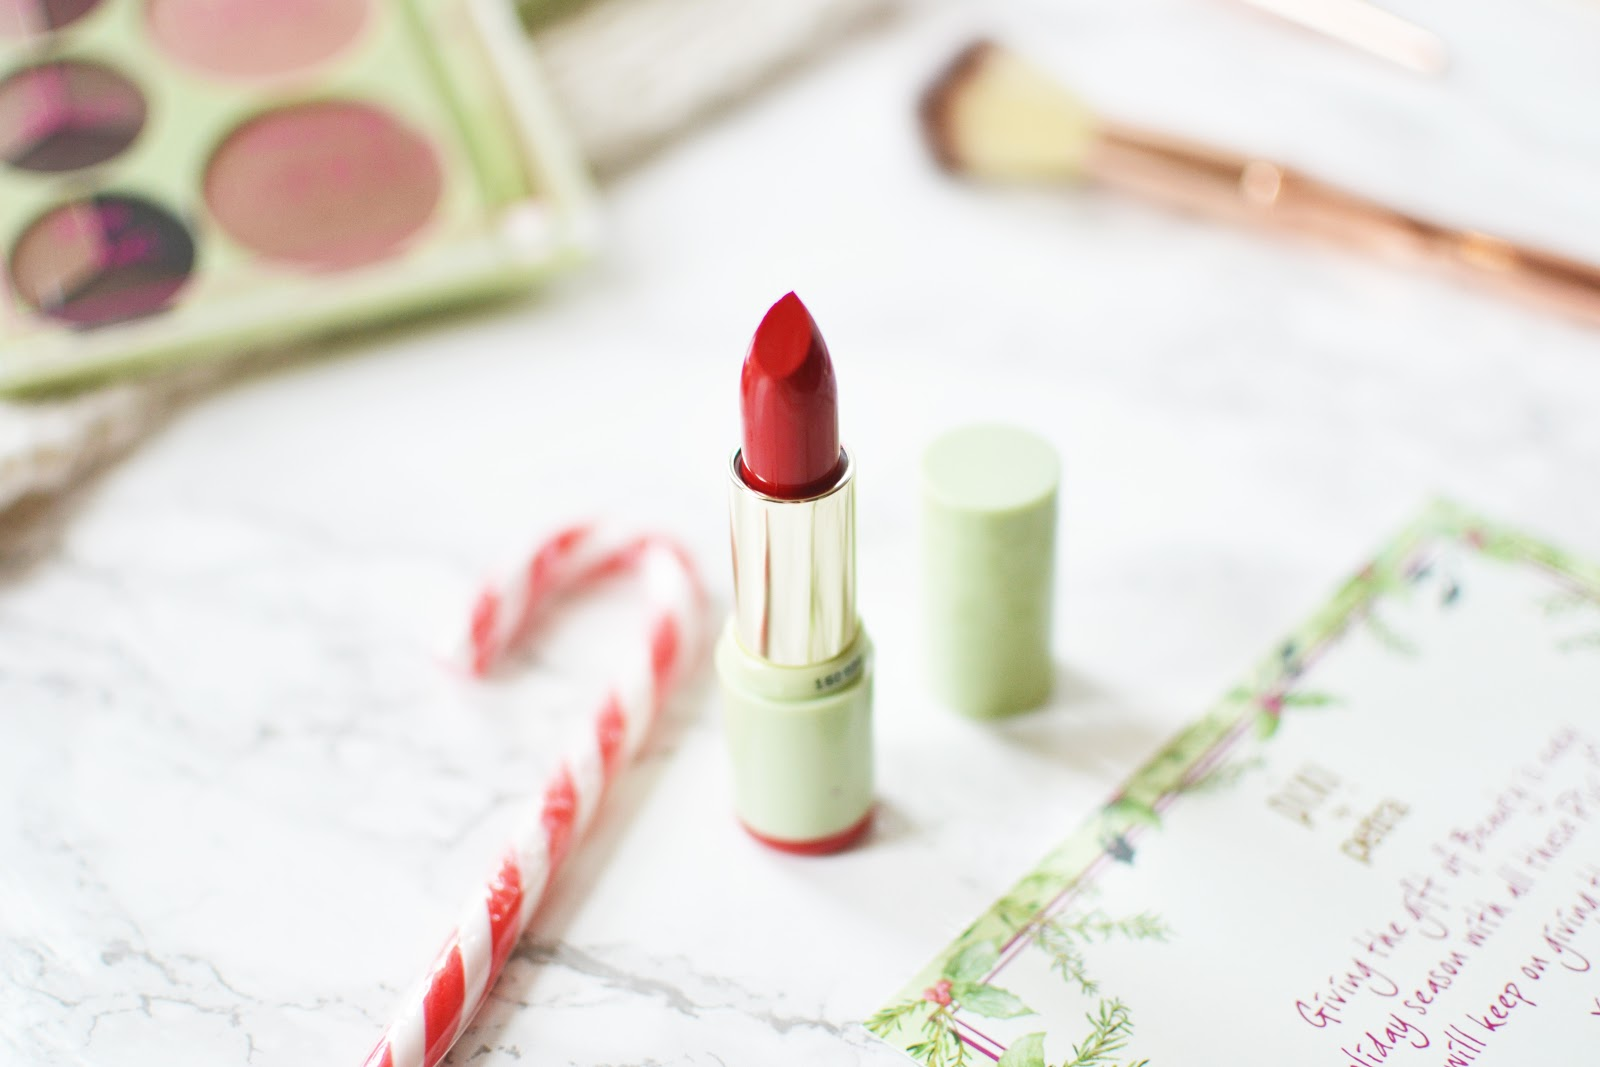 pixi by petra Mattelustre Lipstick classic red